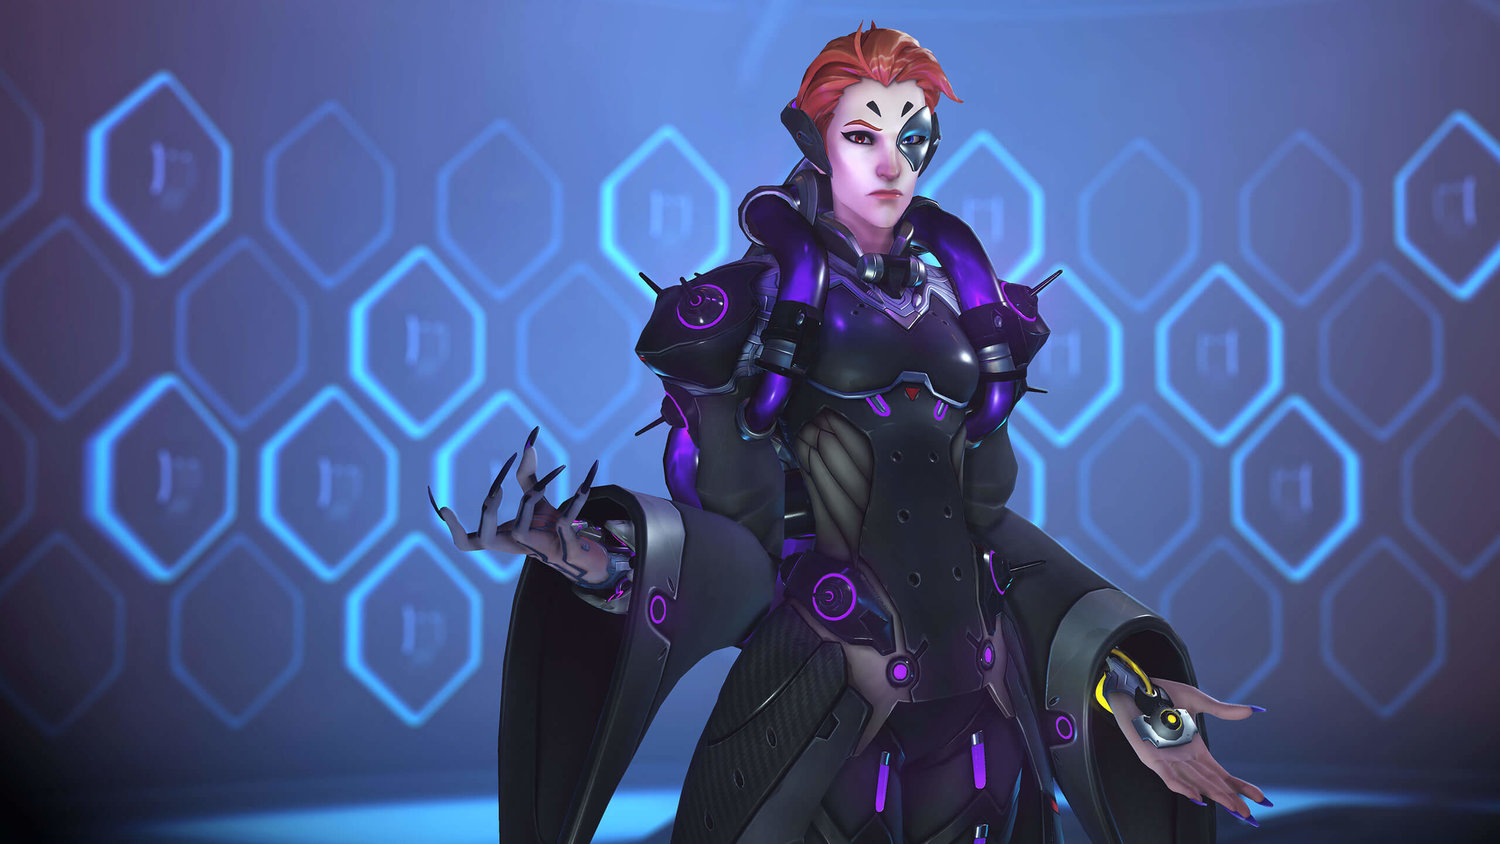 Moira's hero skins - All events included | Esports Tales